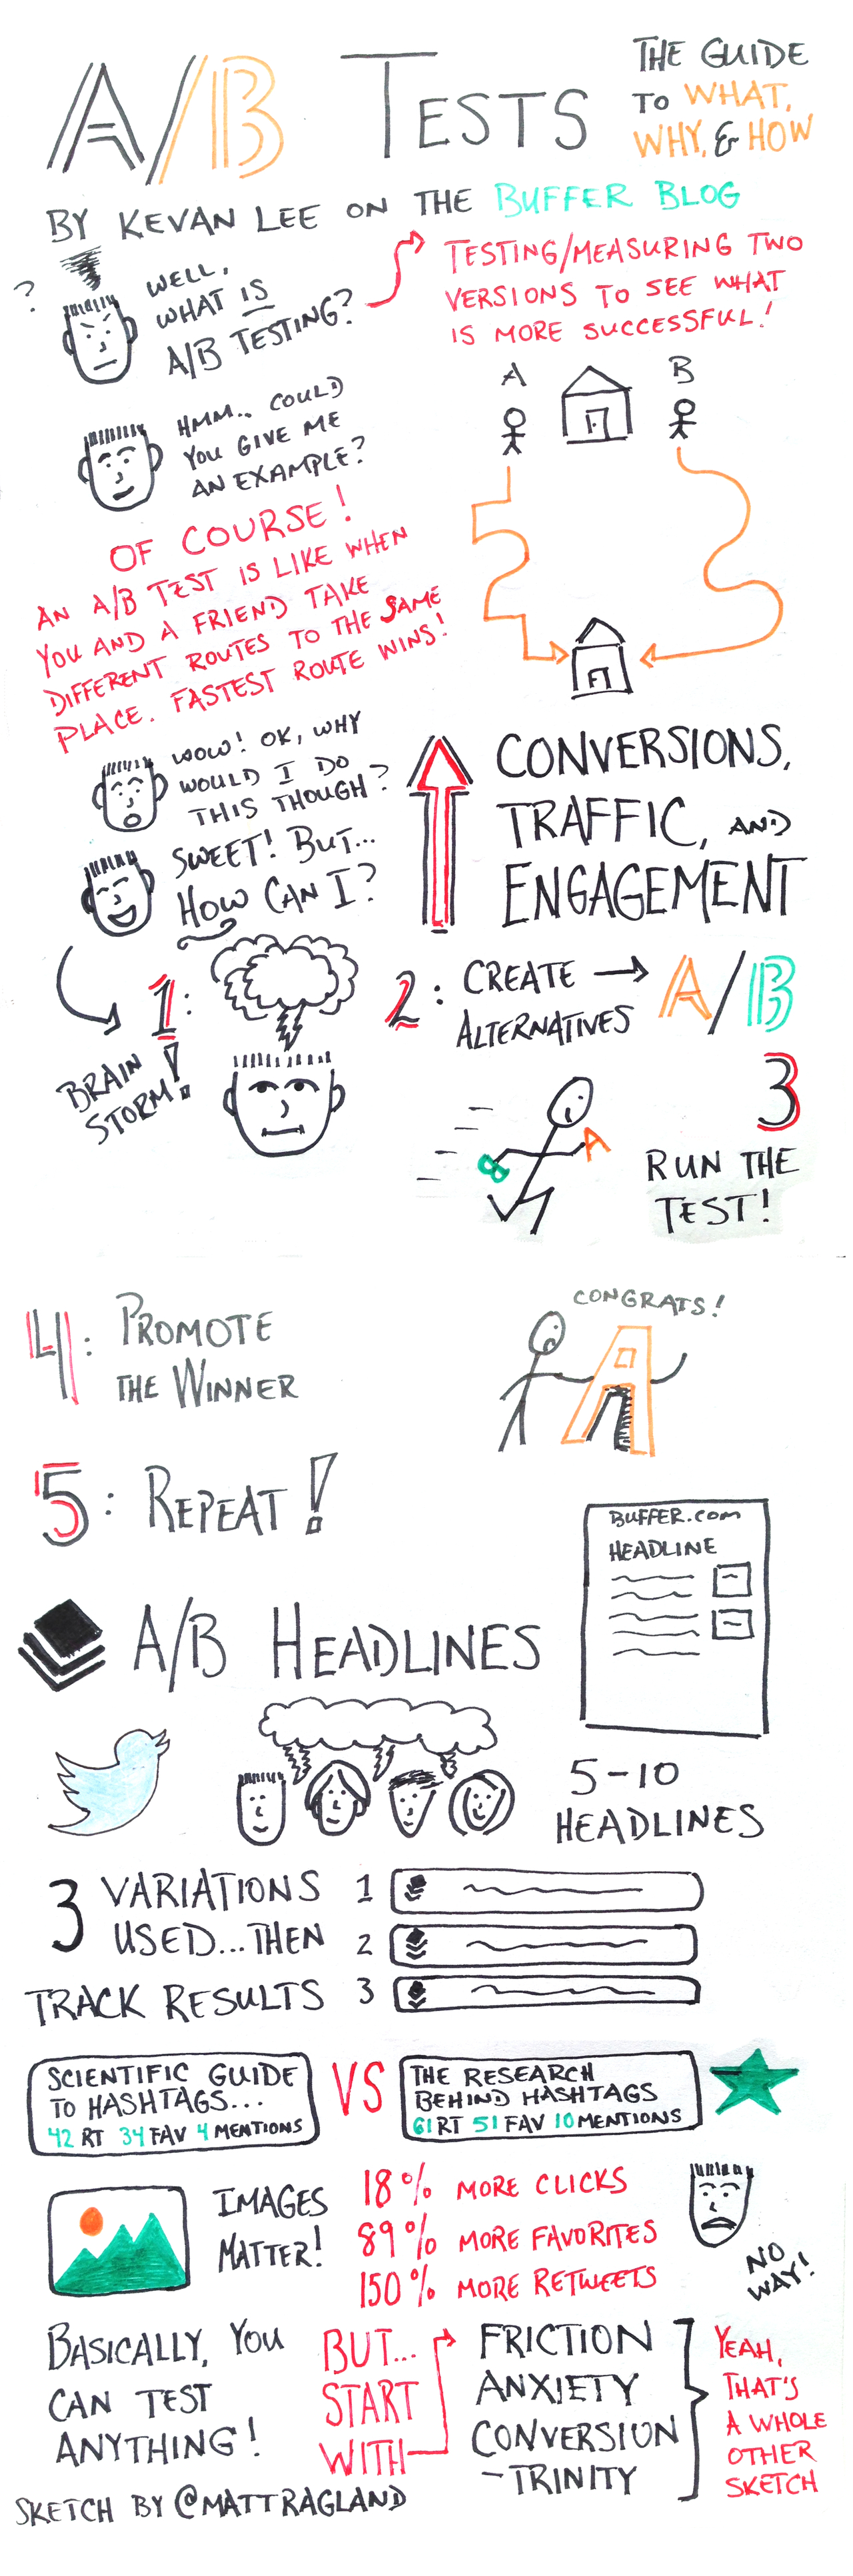 Sketchnote Saturday: How to Effectively A/B Test